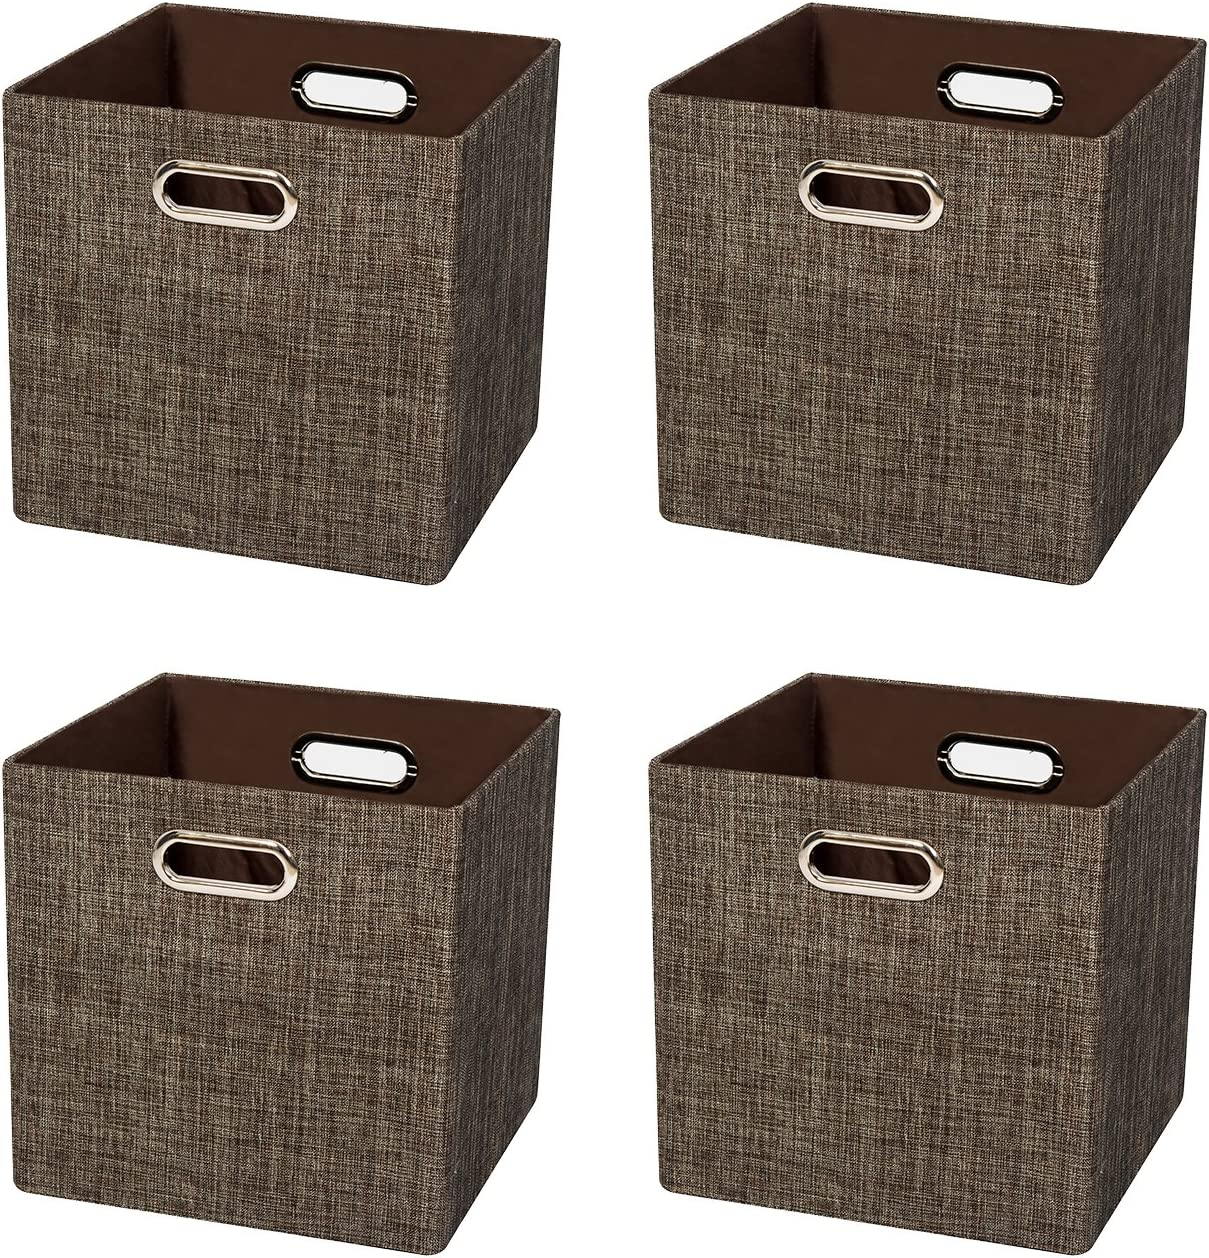 Posprica Storage Bins Cubes Containers Boxes Fabric Drawers,Thick and Heavy Duty Cubby Bins, 11×11 inch- 4pcs,Brown